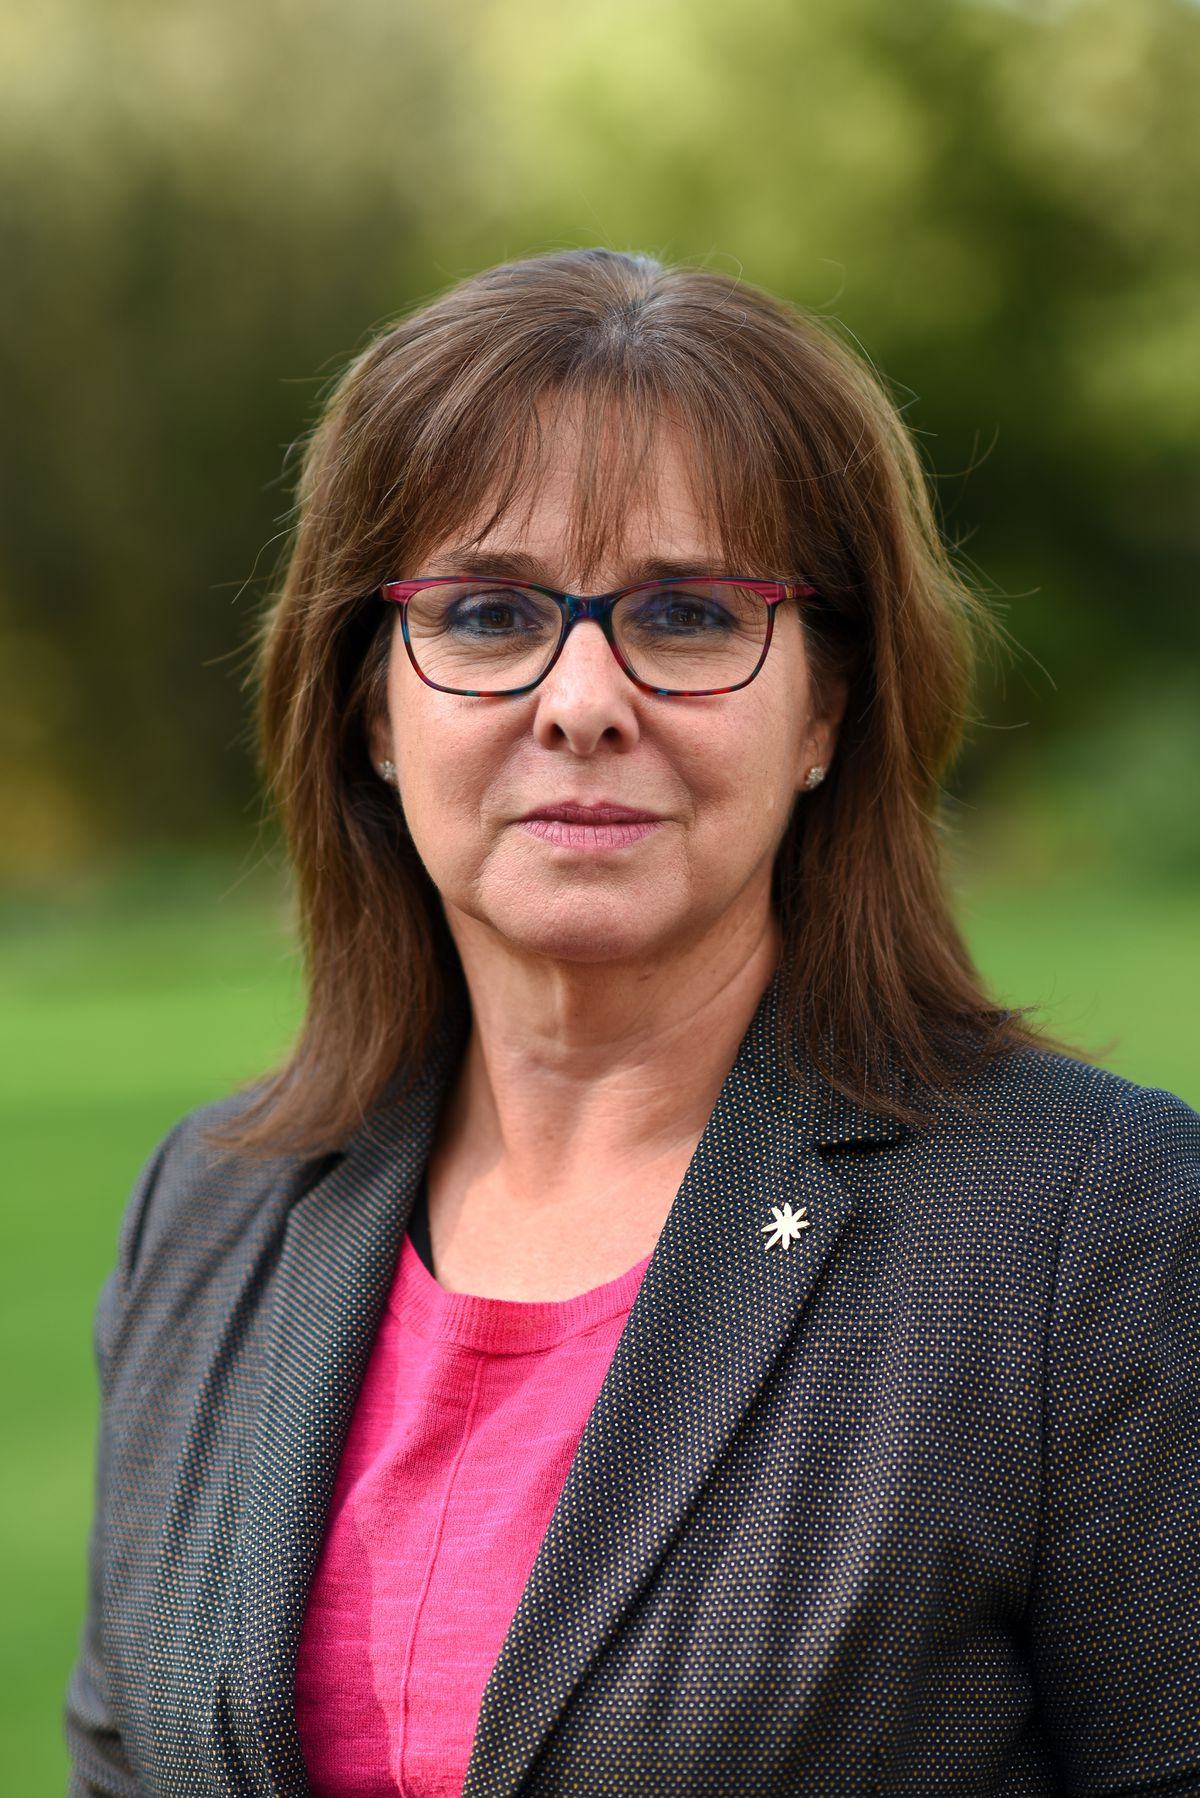 Mandy Thorn MBE, chair of the Marches LEP